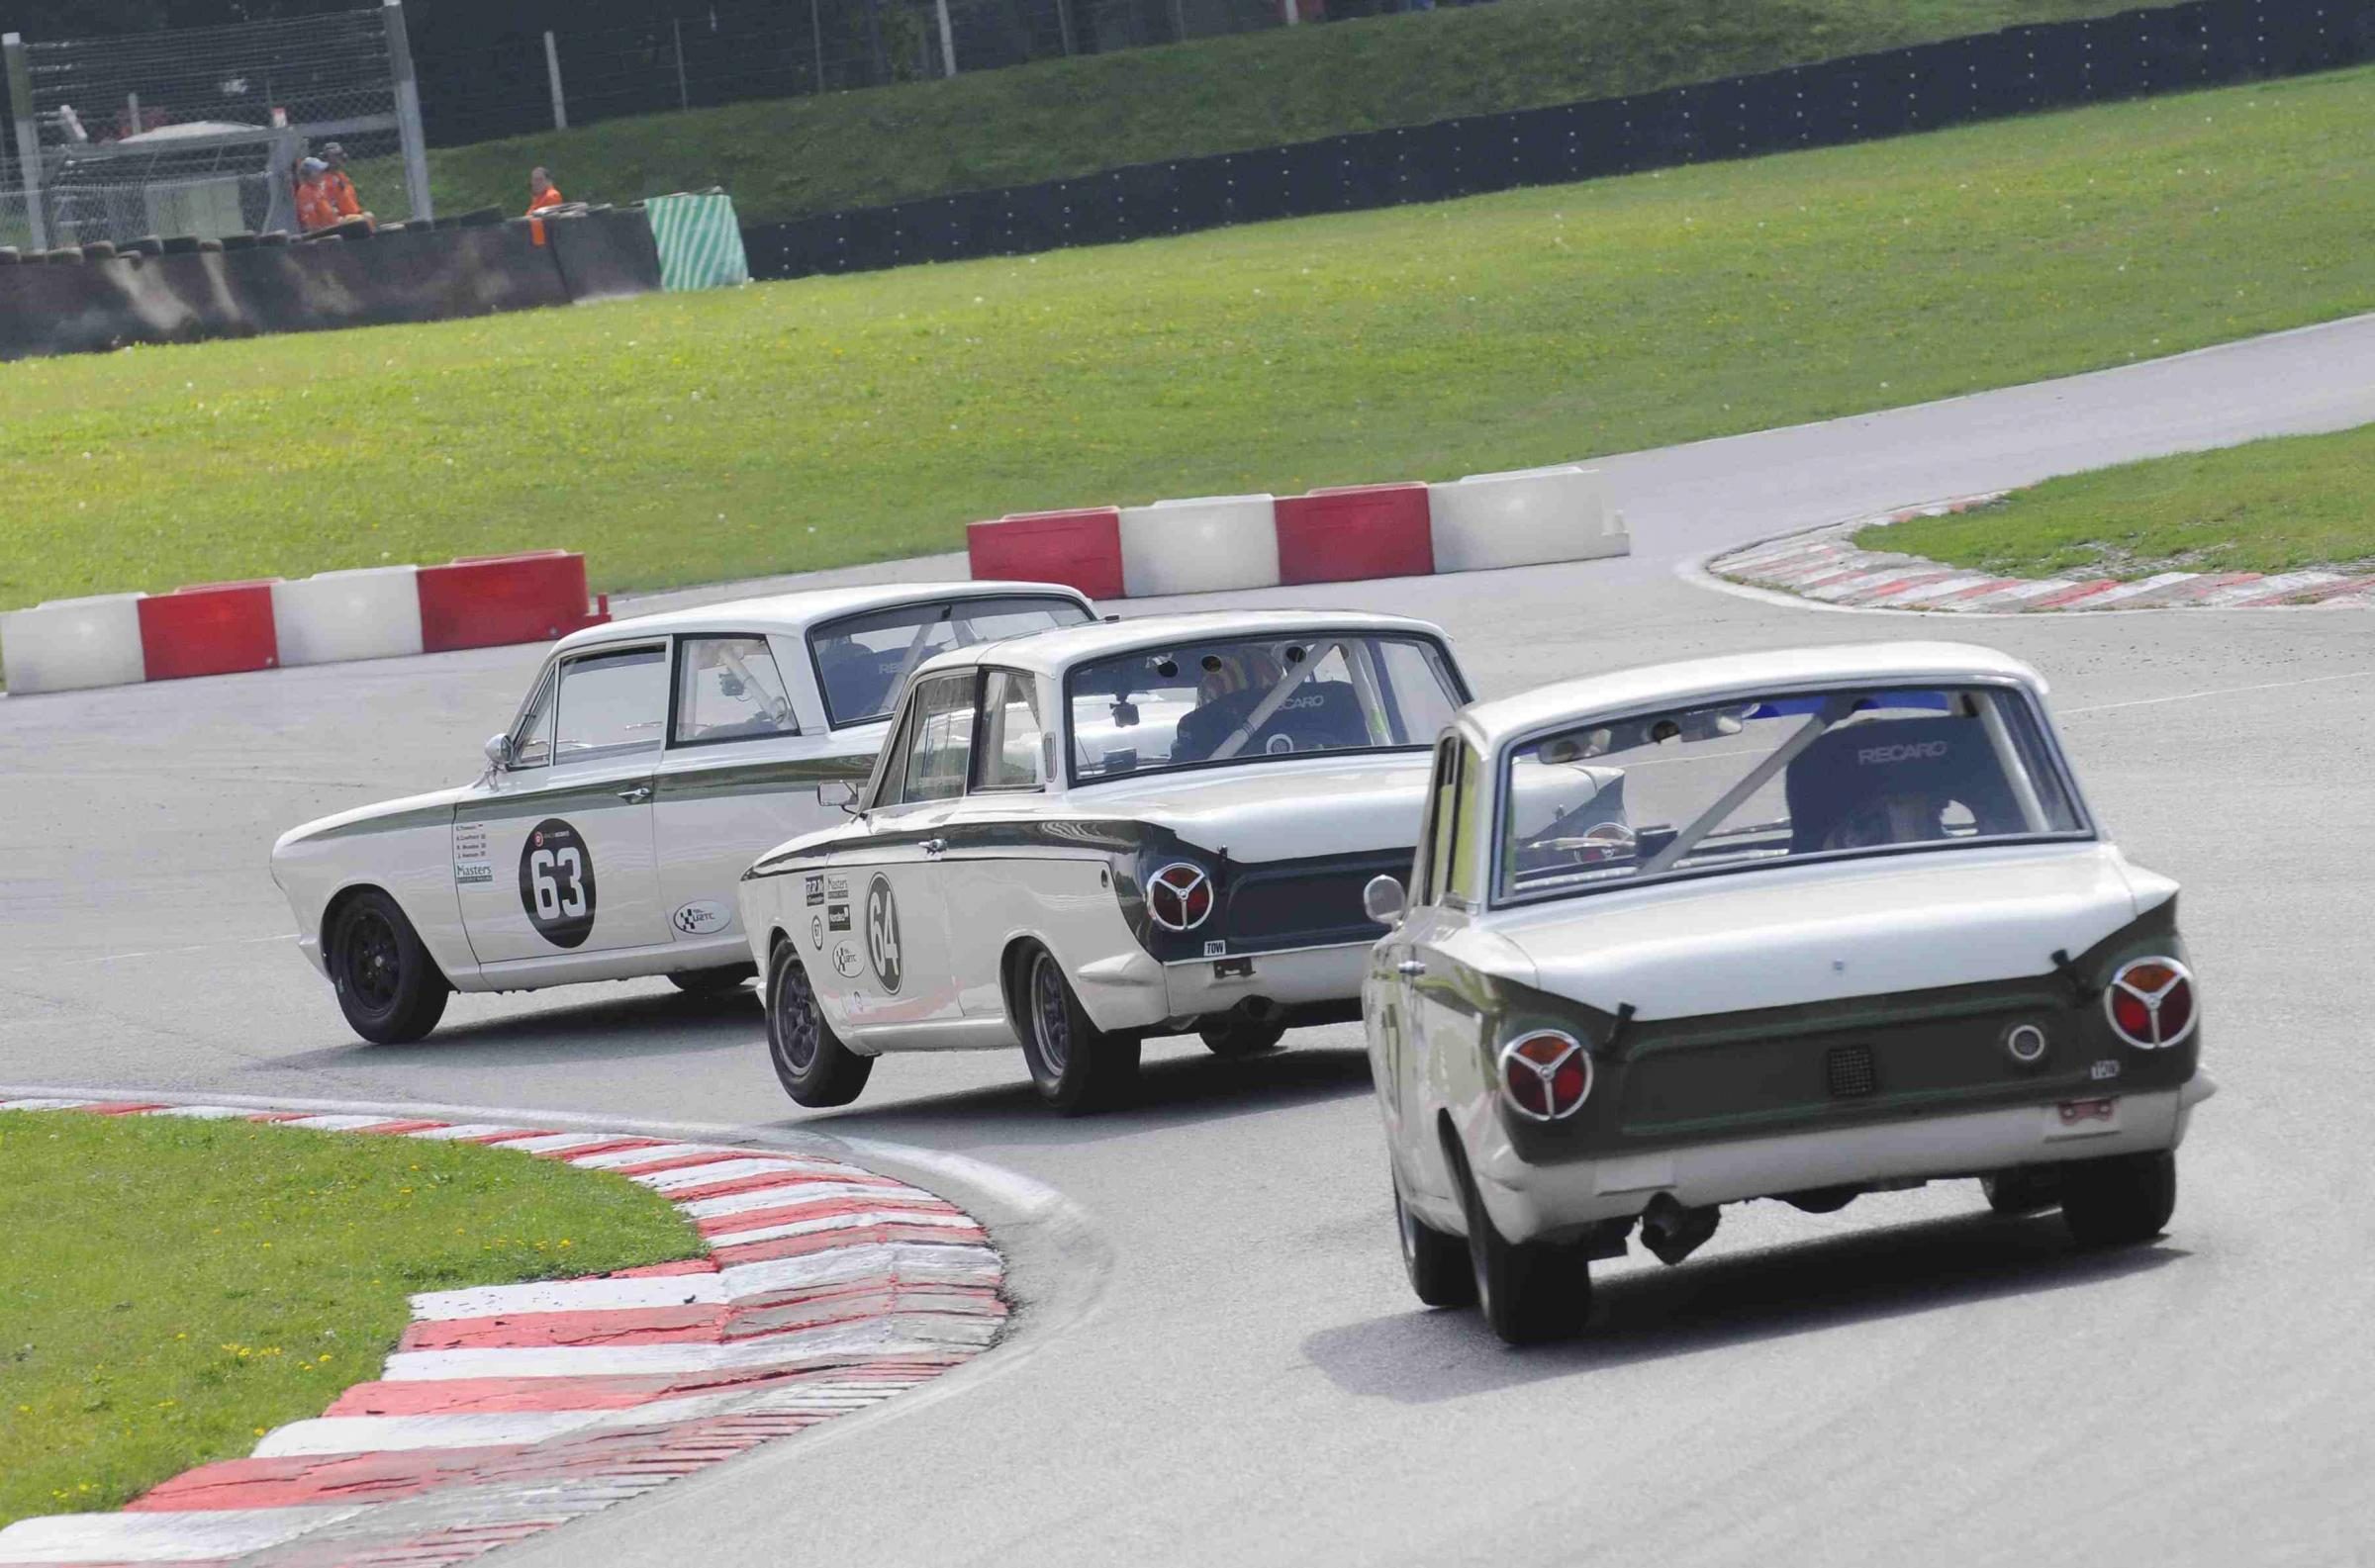 The Lotus Cortina spent the '60s battling against cars as diverse as the Mini Cooper and the Chevrolet Camaro